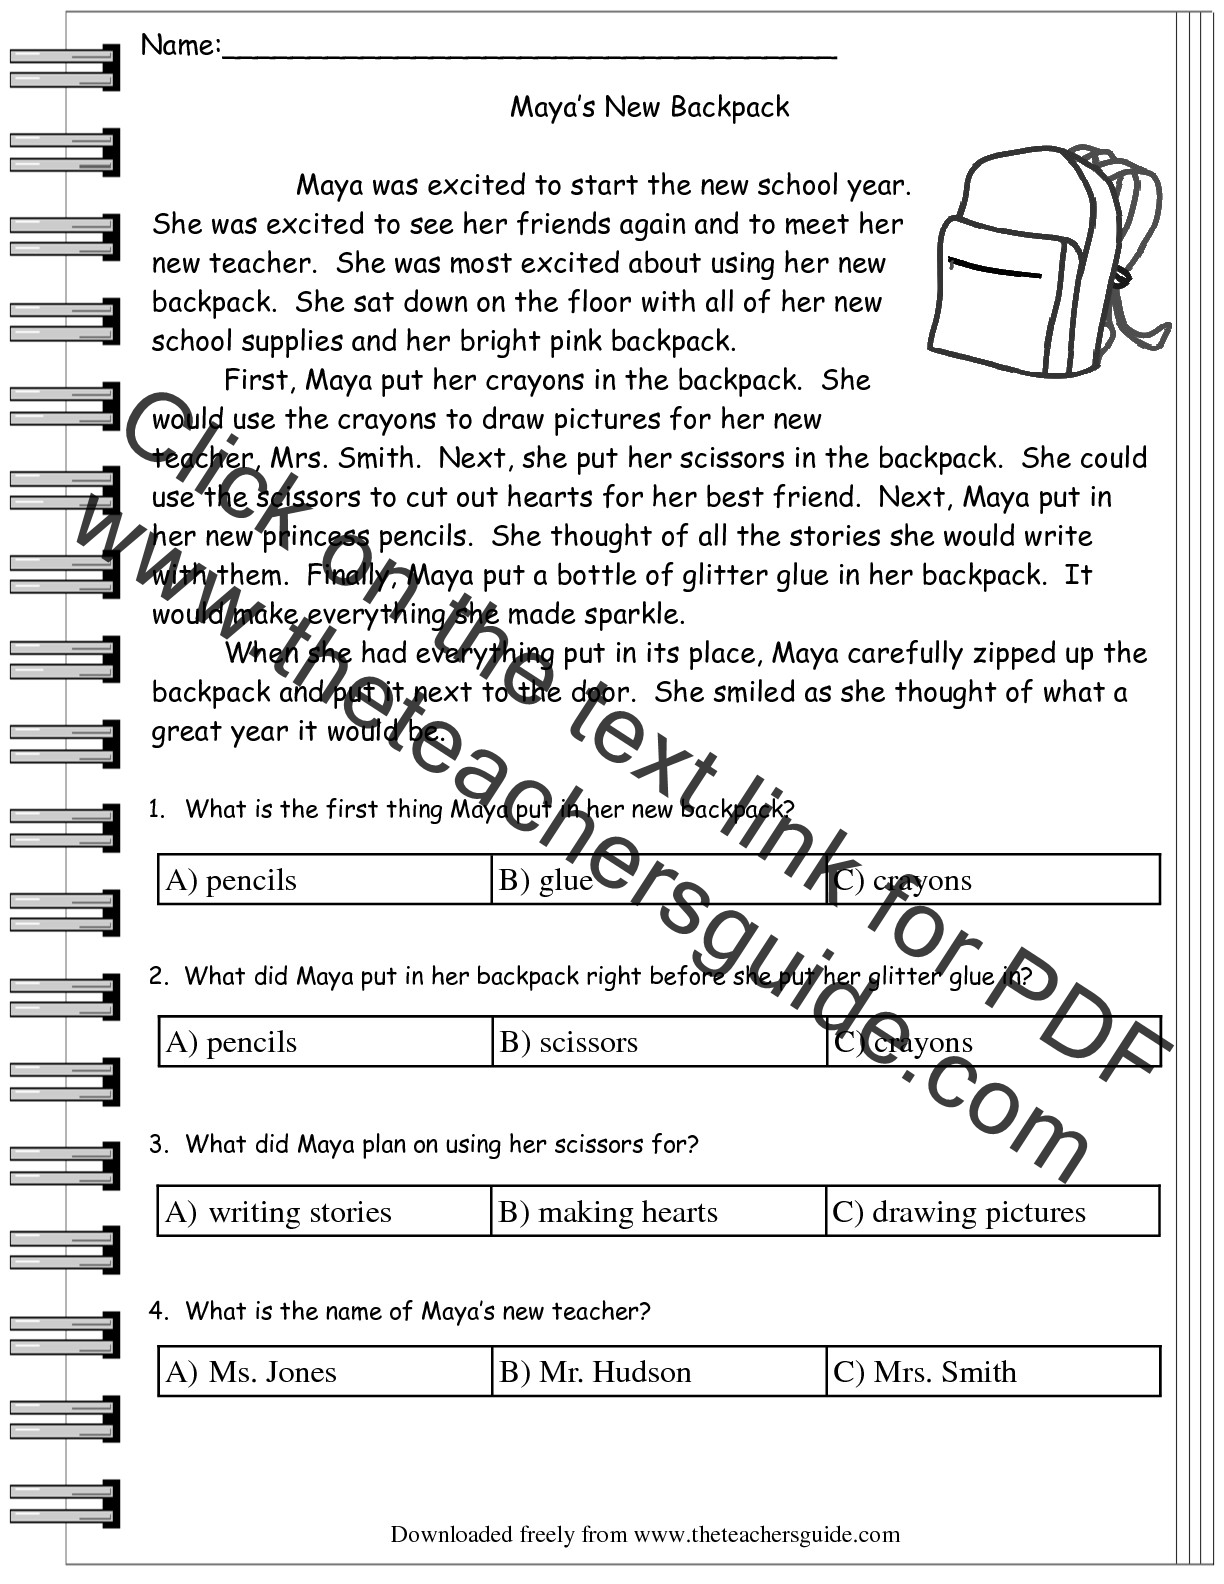 worksheet Free Reading Comprehension Worksheets For 1st Grade reading comprehension worksheets multiple choice free literature from the teachers guide